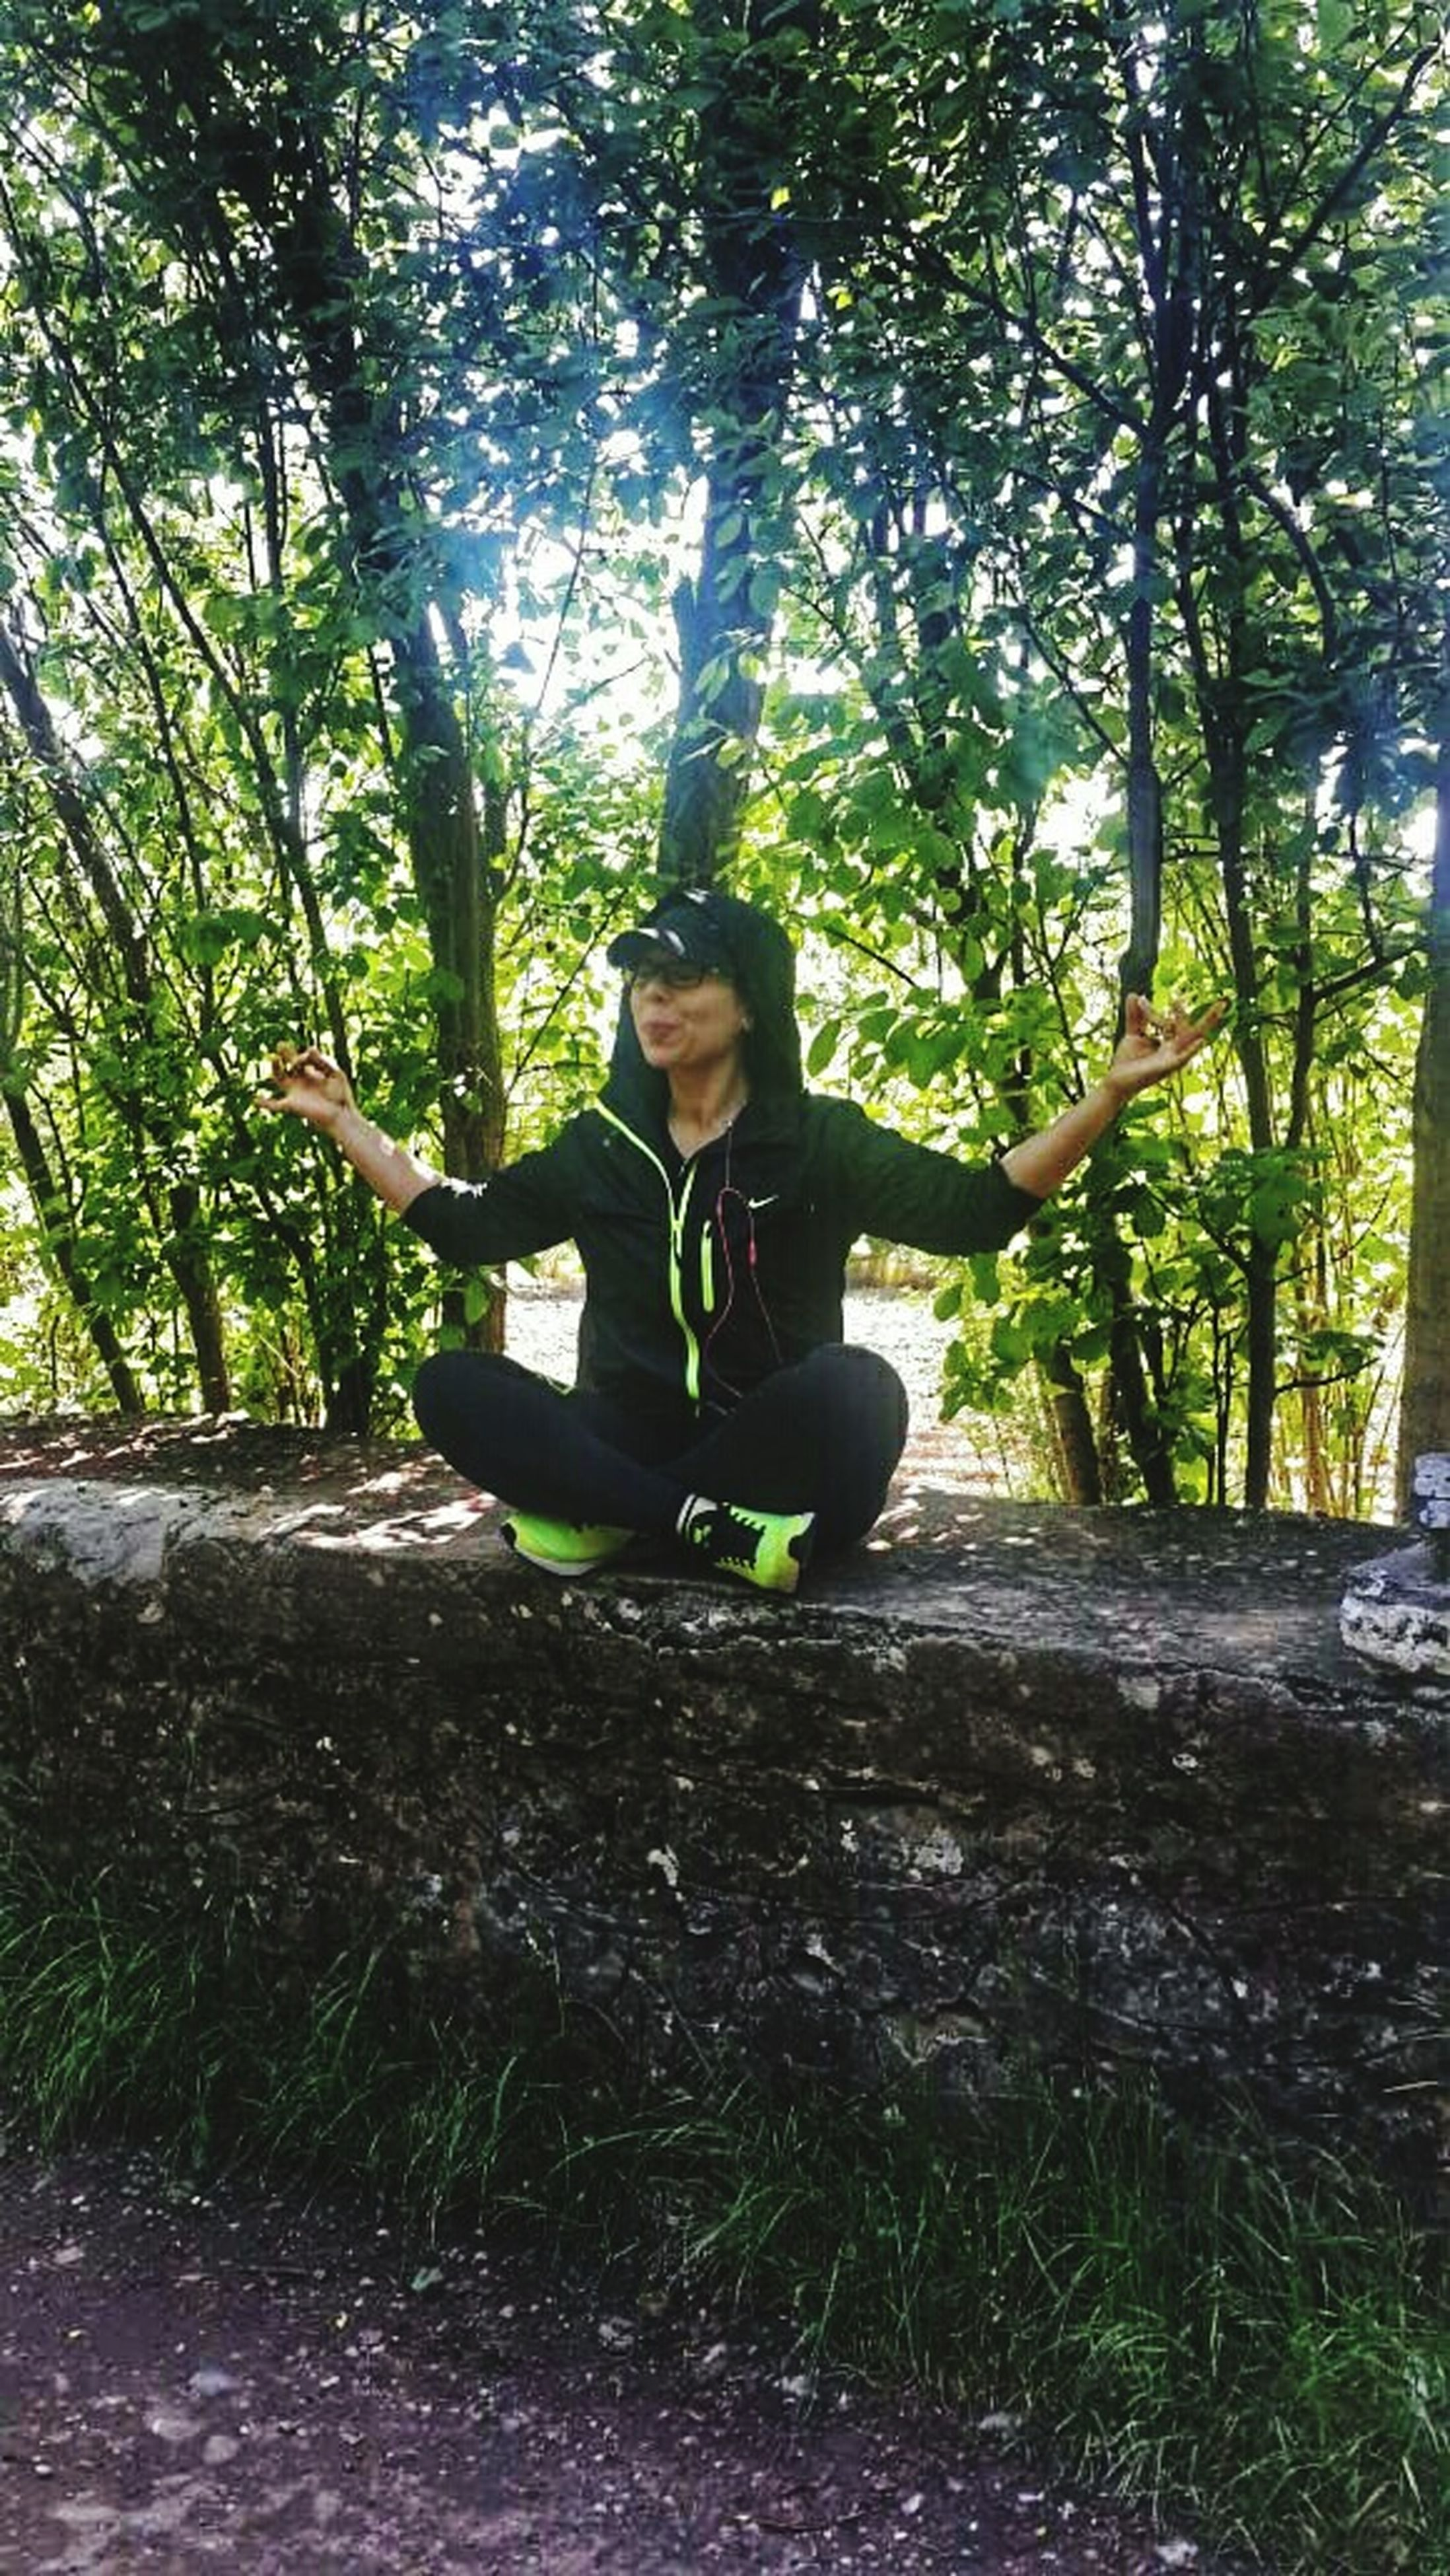 tree, lifestyles, leisure activity, young adult, casual clothing, full length, person, sitting, young women, forest, smiling, looking at camera, portrait, relaxation, three quarter length, growth, nature